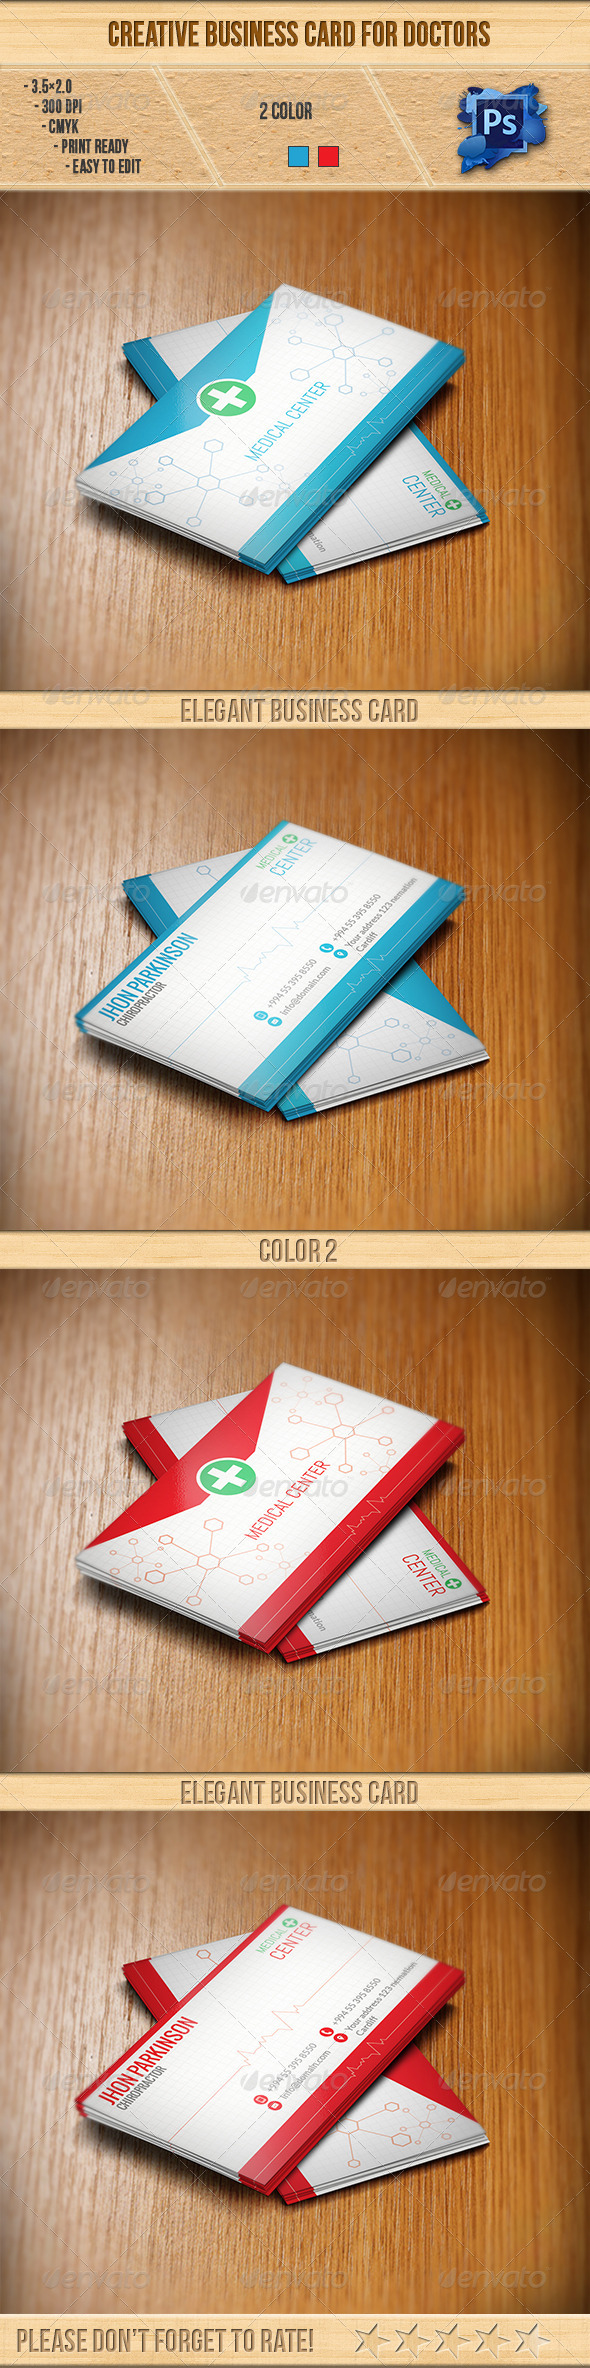 Creative Business Card for Doctors - Creative Business Cards